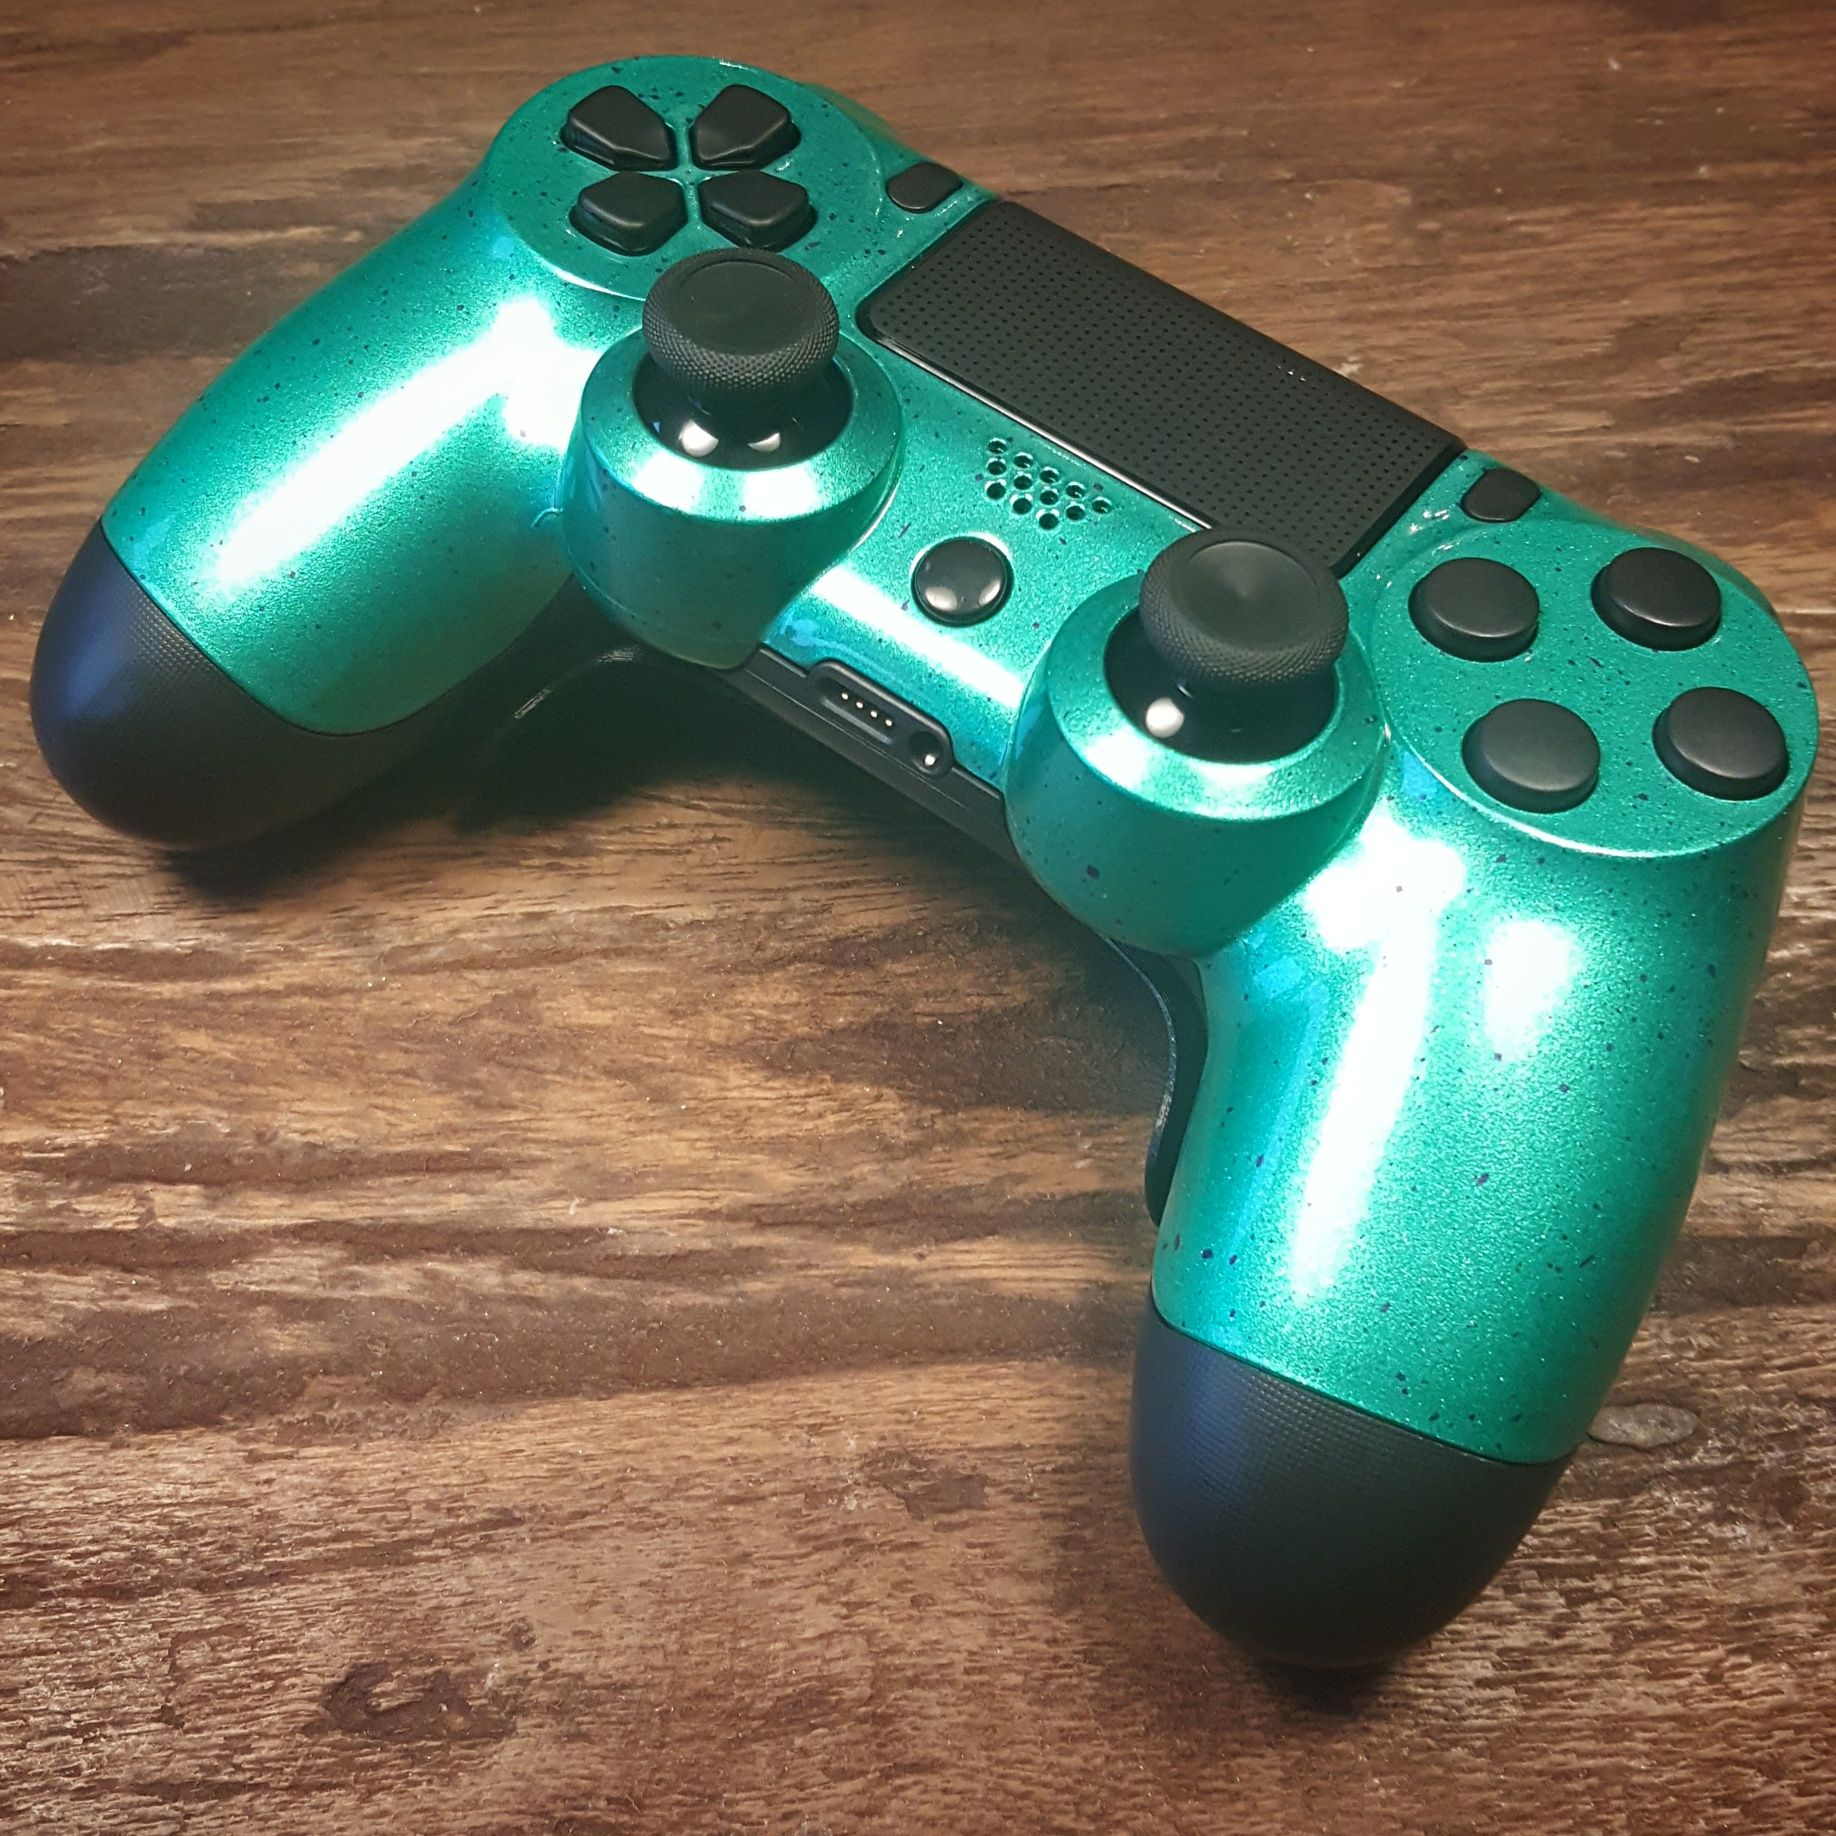 Ps4 Controllers With Green Custom Paint And Shock Paddles 2 0 Ps4 Controller Gamer Setup Xbox One Controller